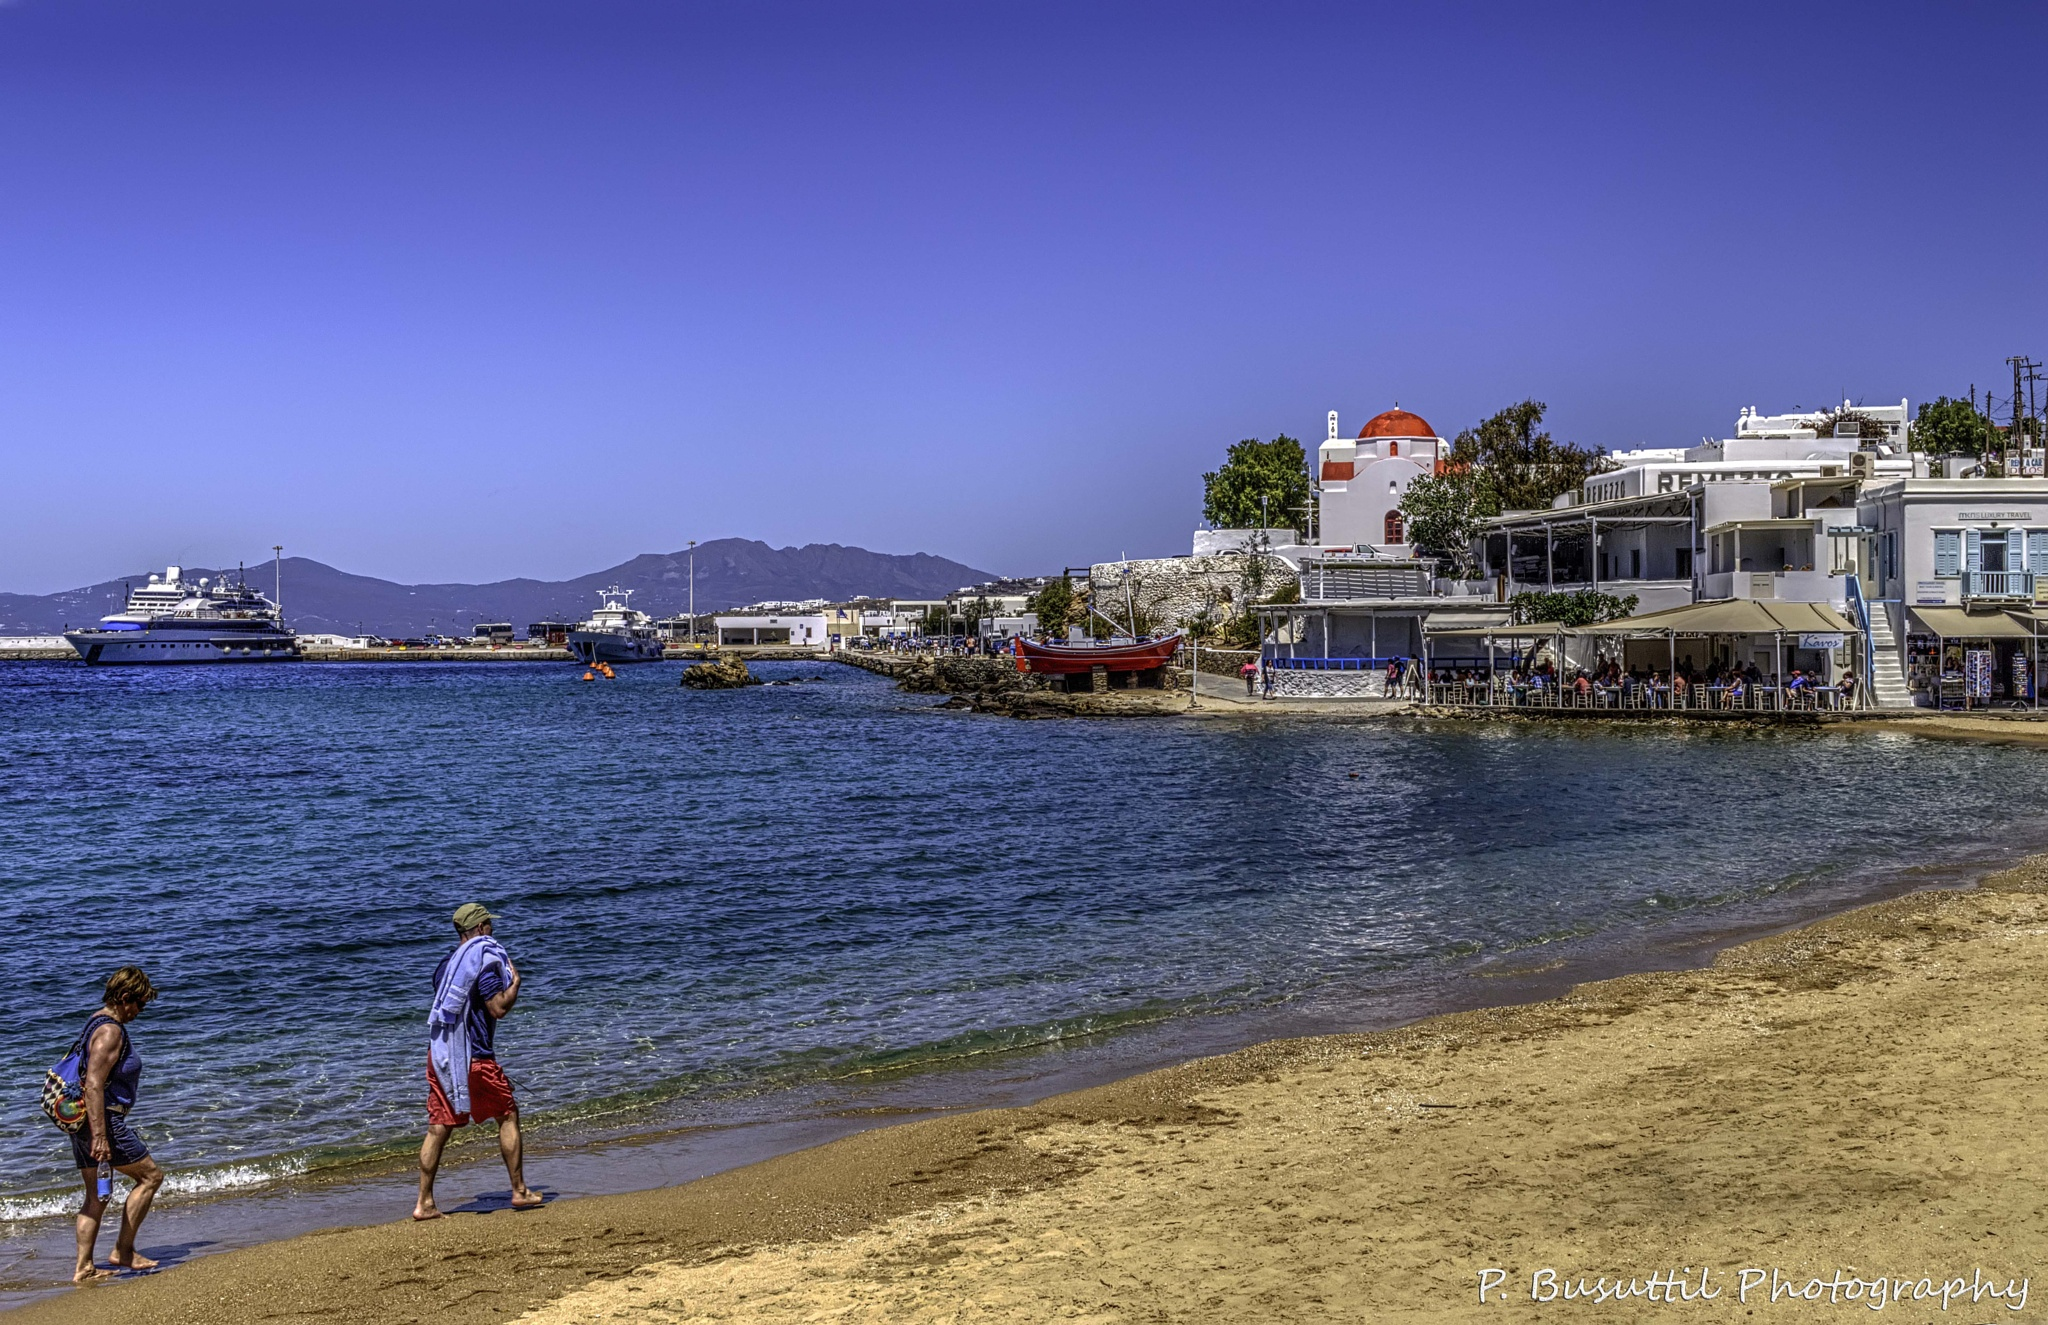 Strolling on the beach by peter.busuttil